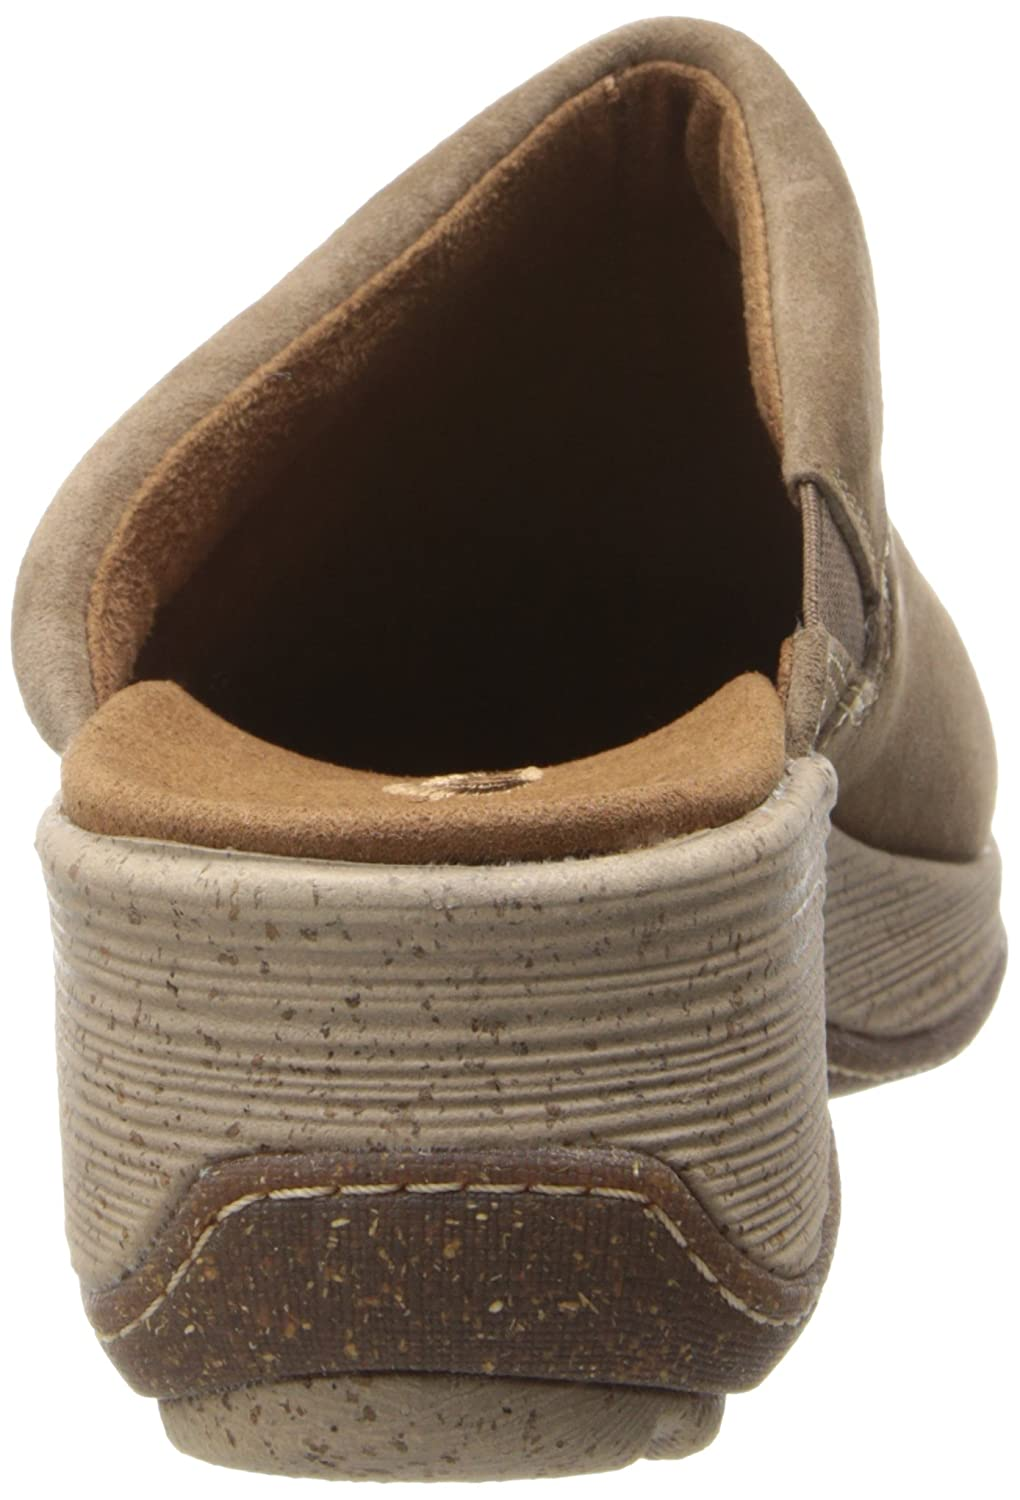 ACORN Women's Vista Wedge Clog